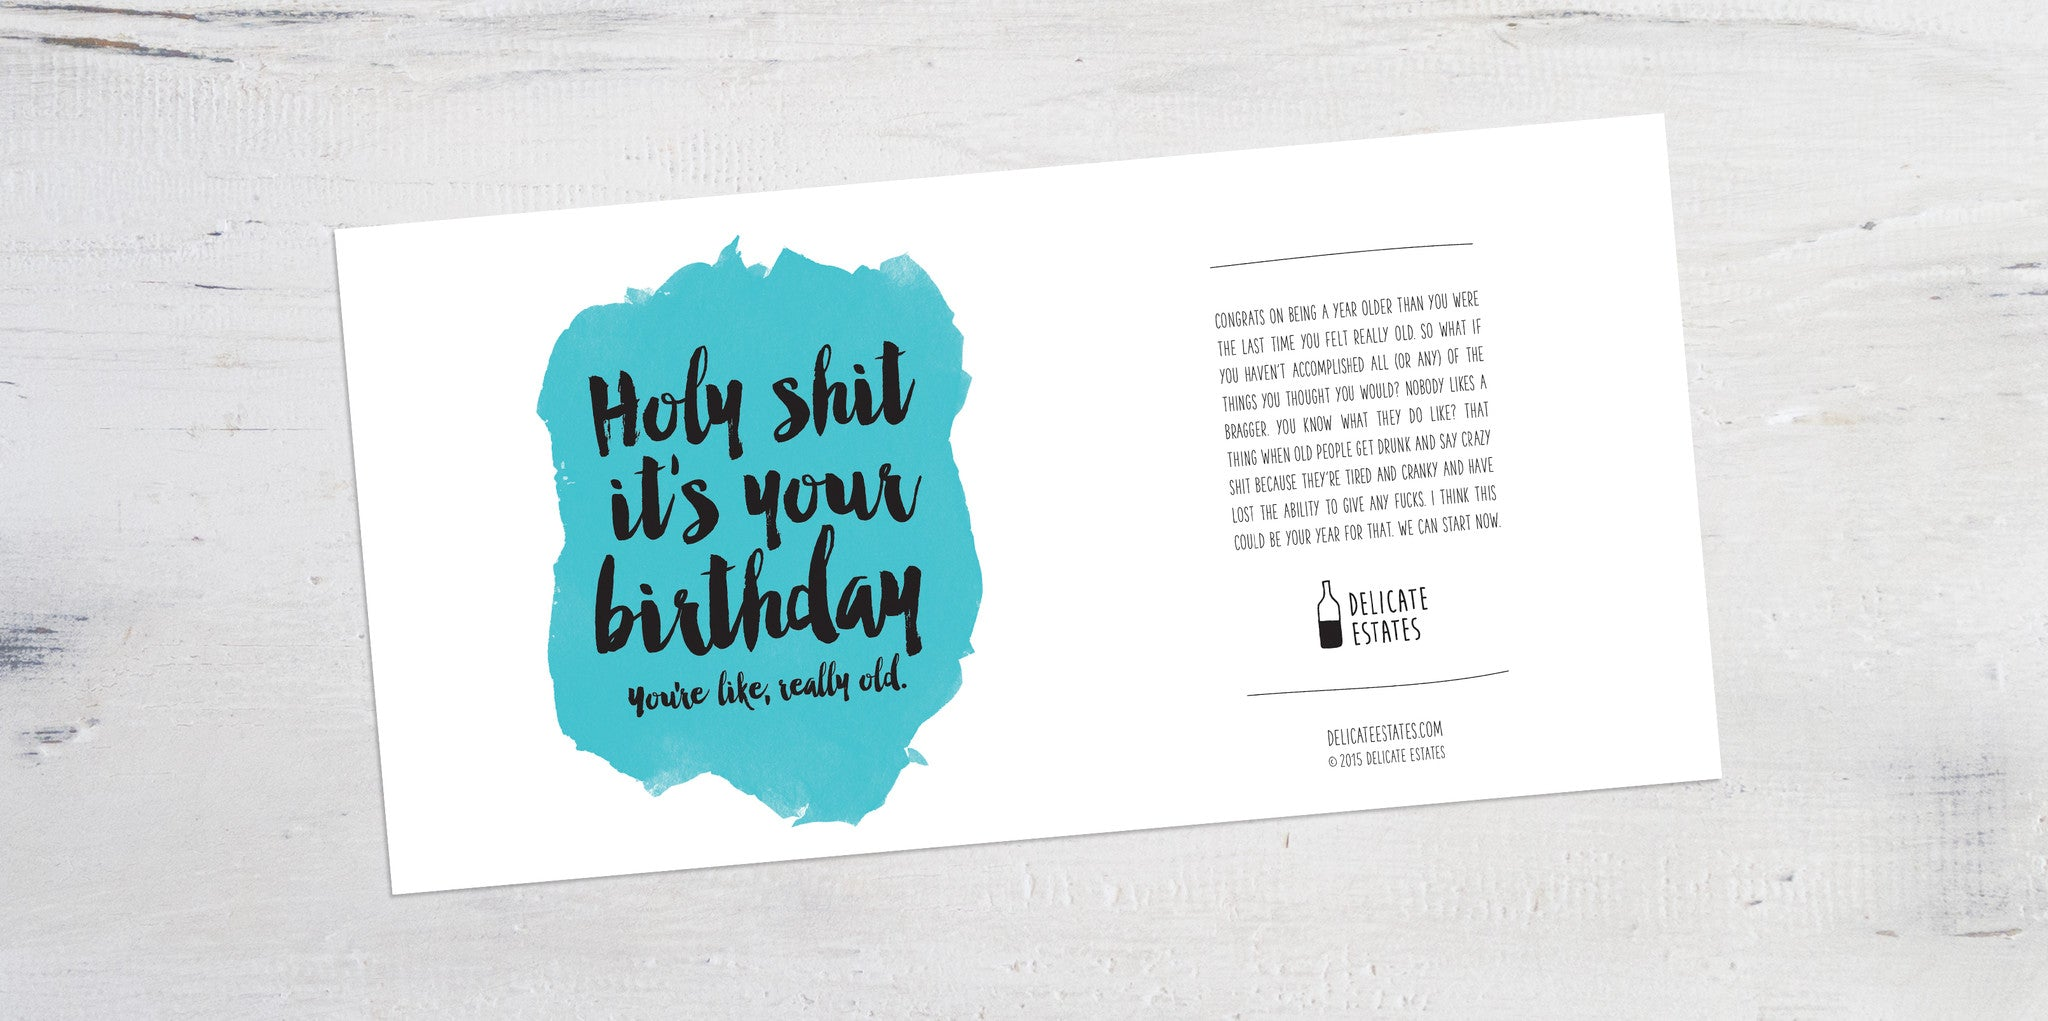 birthday wine label greeting card delicate estates novelty sarcastic funny